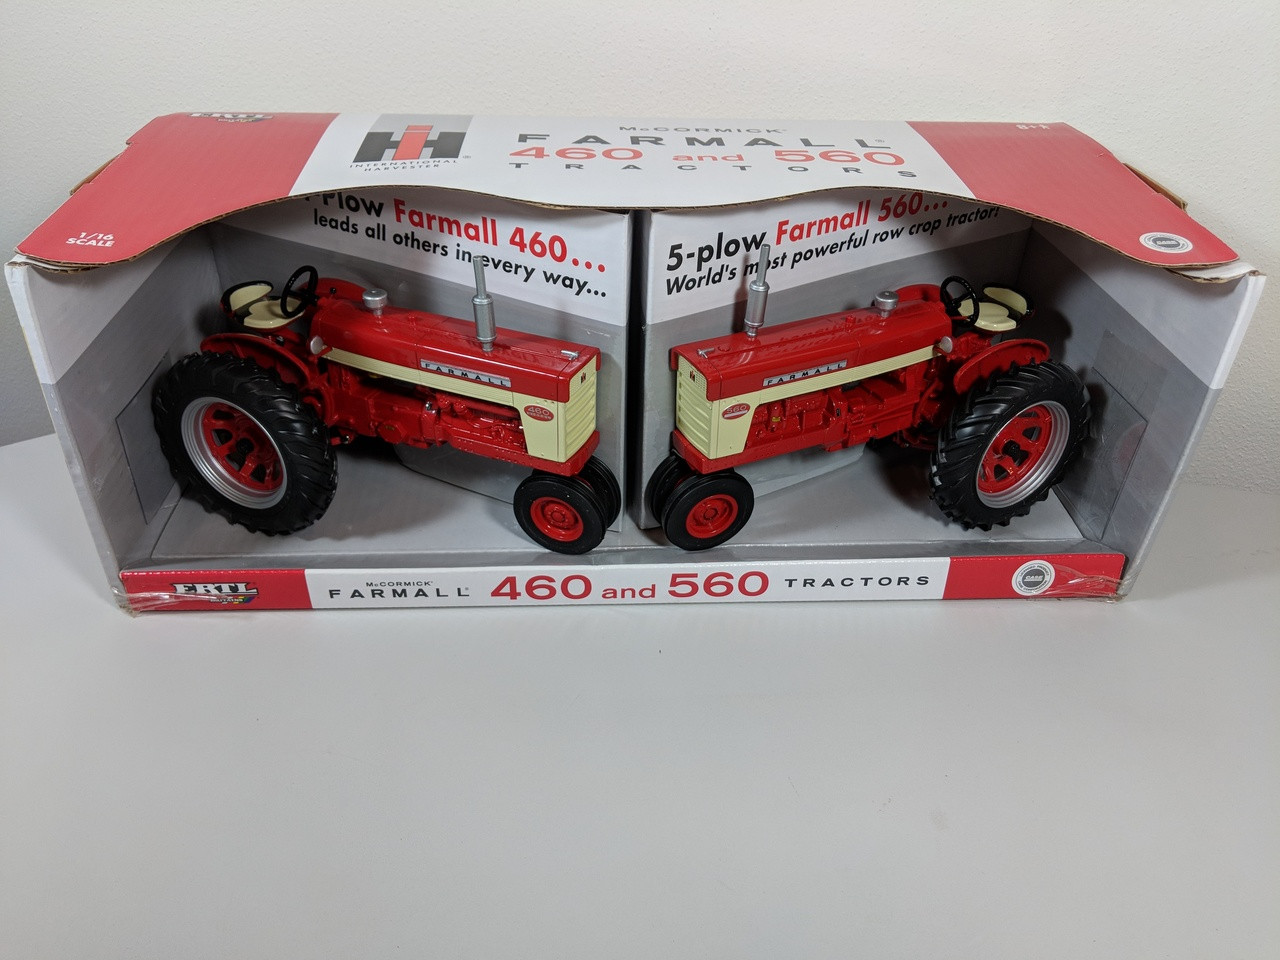 1 16 farmall 460 and 560 2 piece tractor set collector edition set also 806 farmall tractor wiring harness in addition 560 farmall [ 1280 x 960 Pixel ]